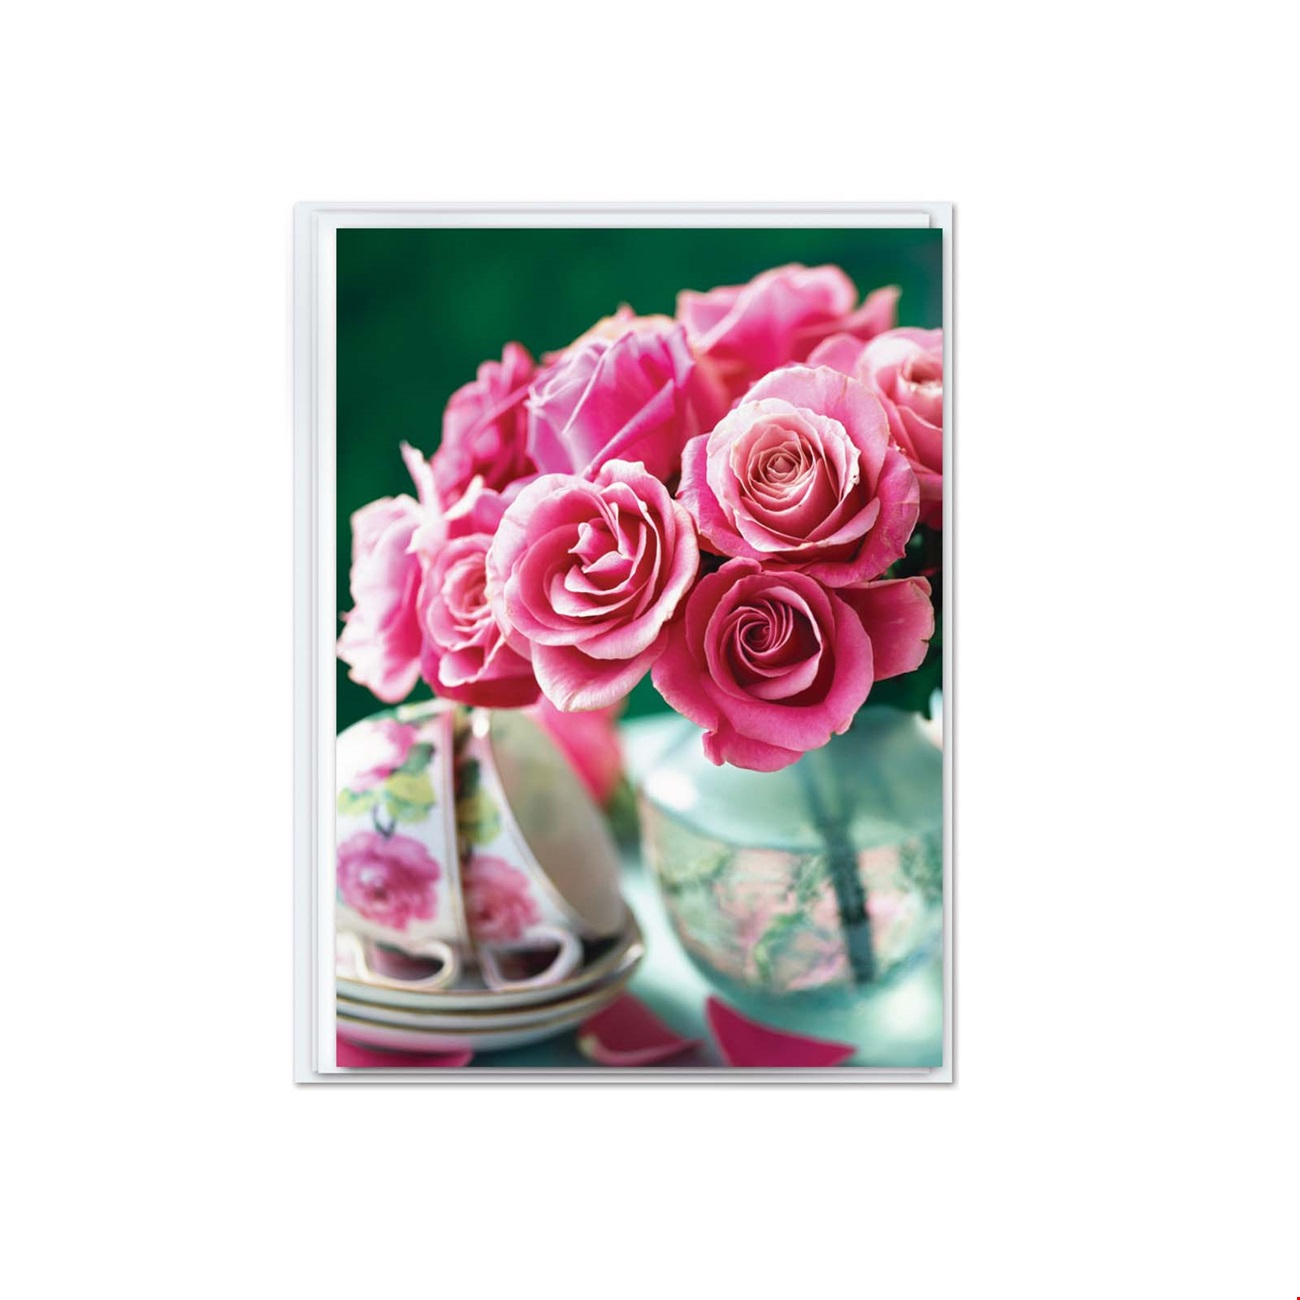 Mini Notecard - Pink roses